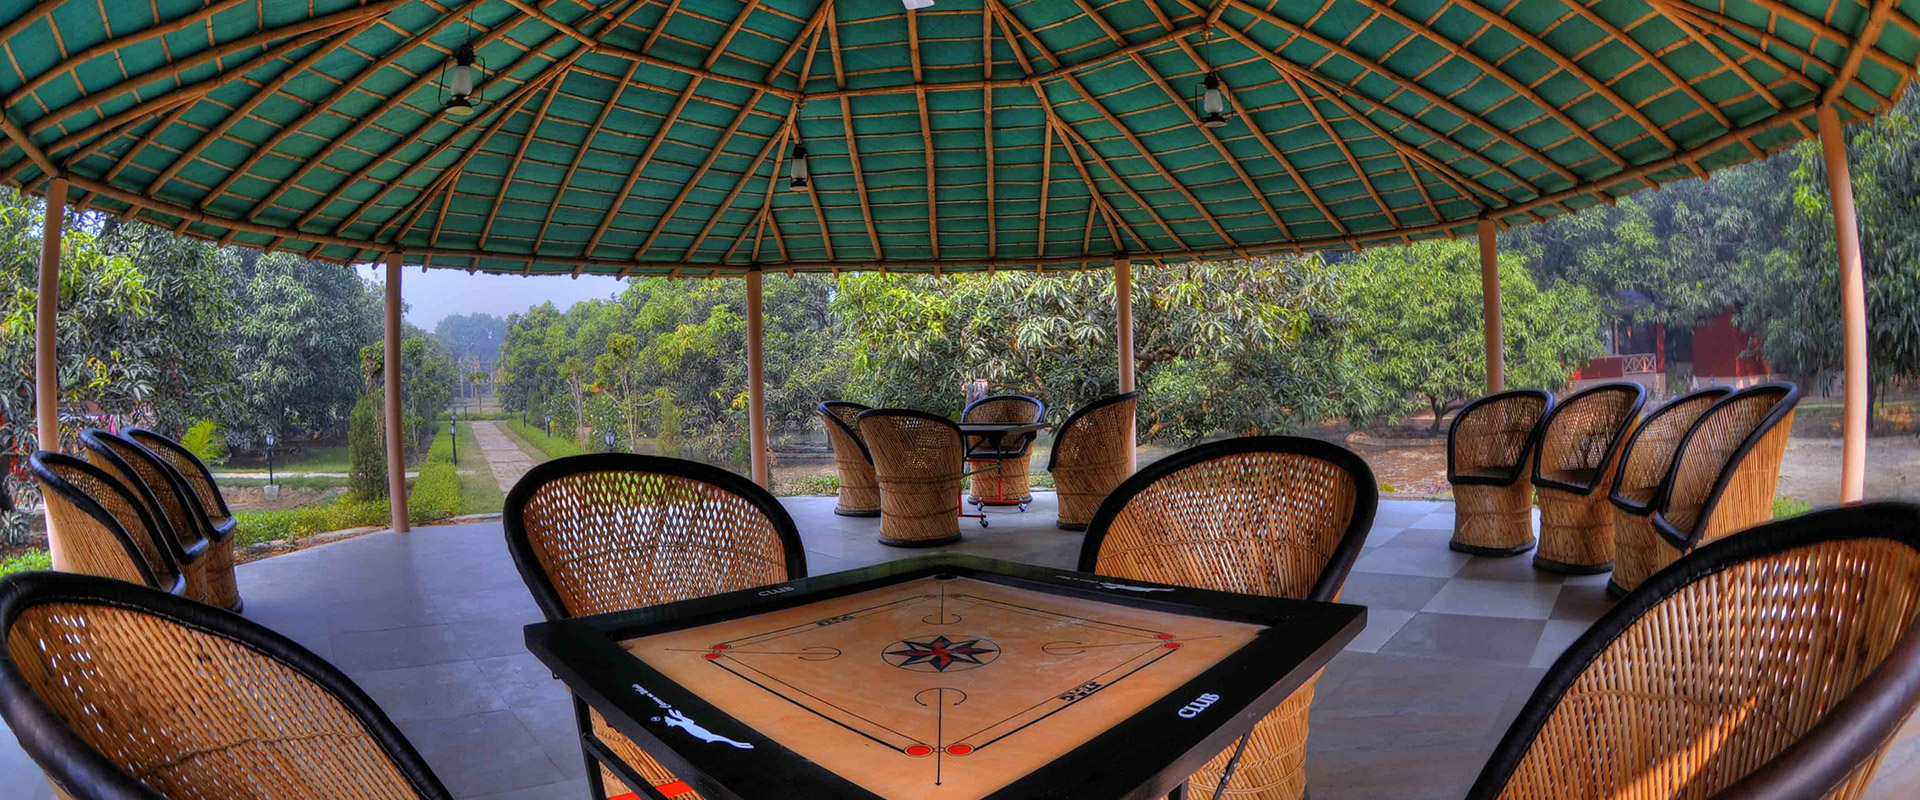 carrom games at baghaan